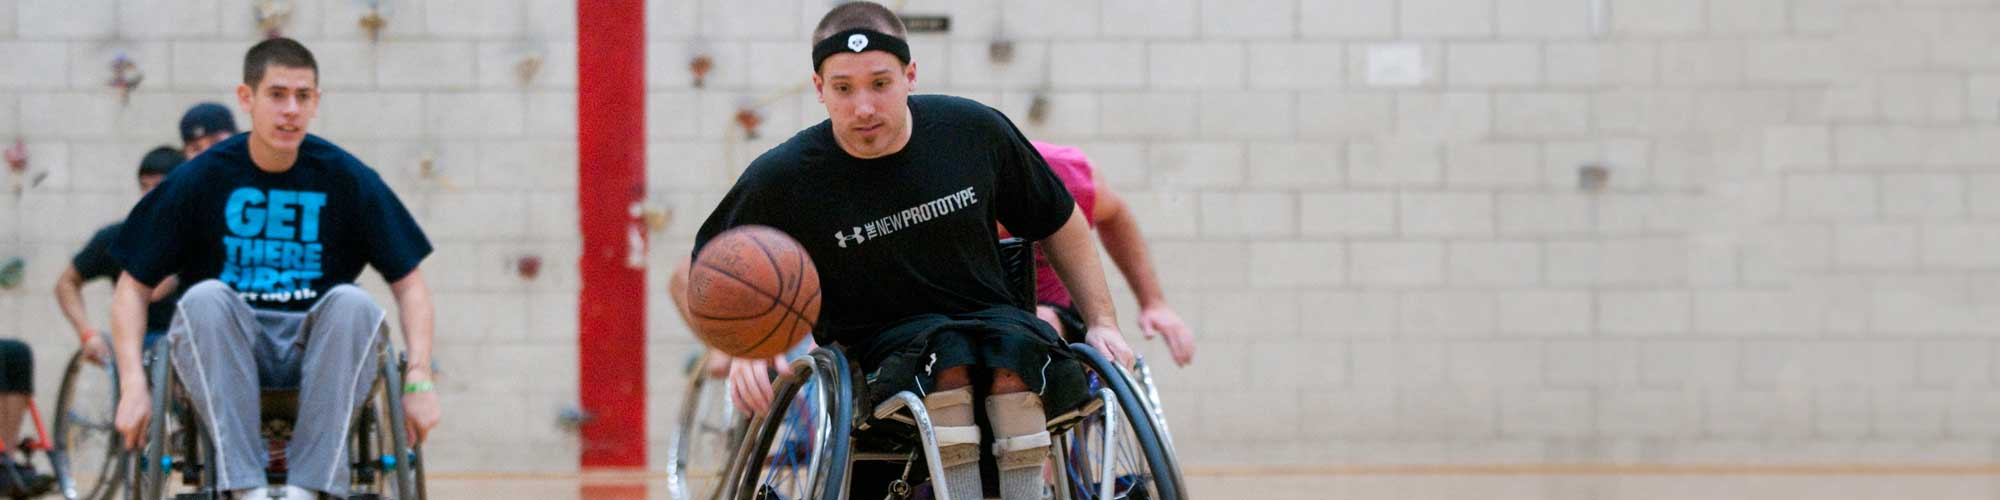 Physical education majors compete in wheelchair basketball.